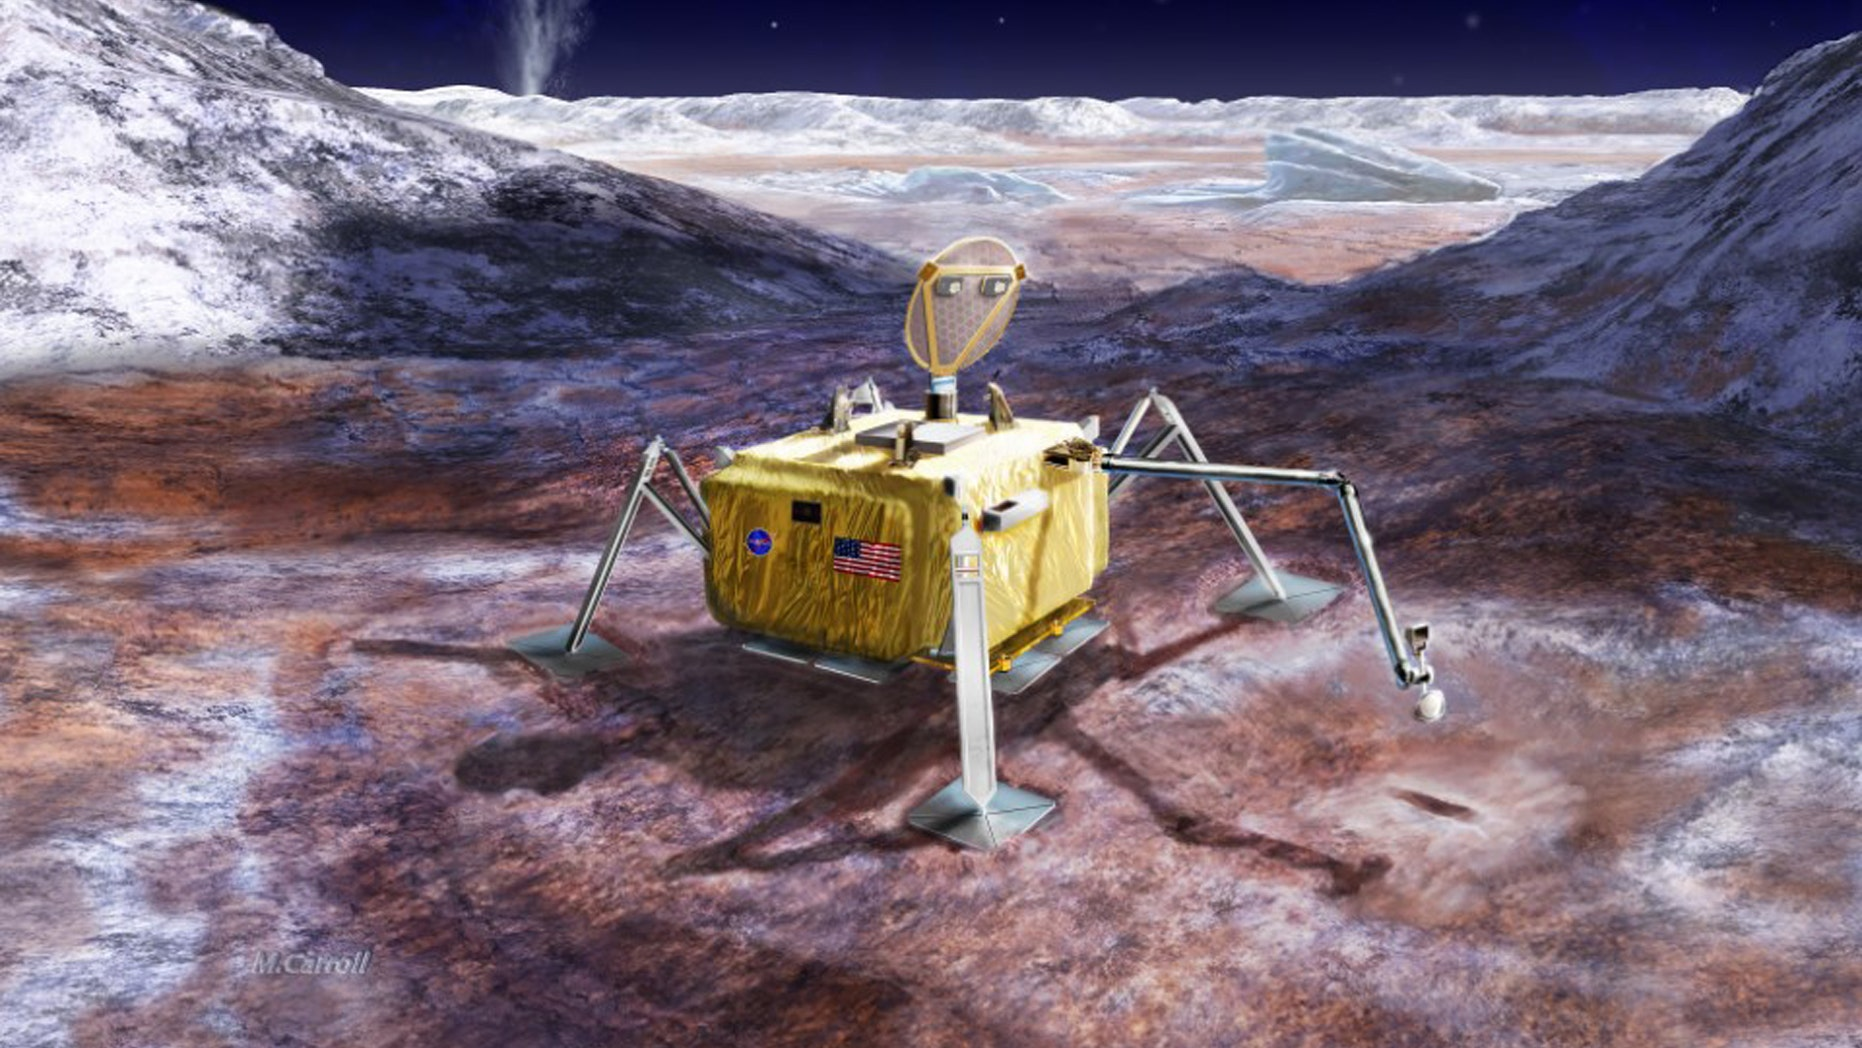 (An artist's rendering of what the lander could look like. Credit NASA/JPL–Caltech)